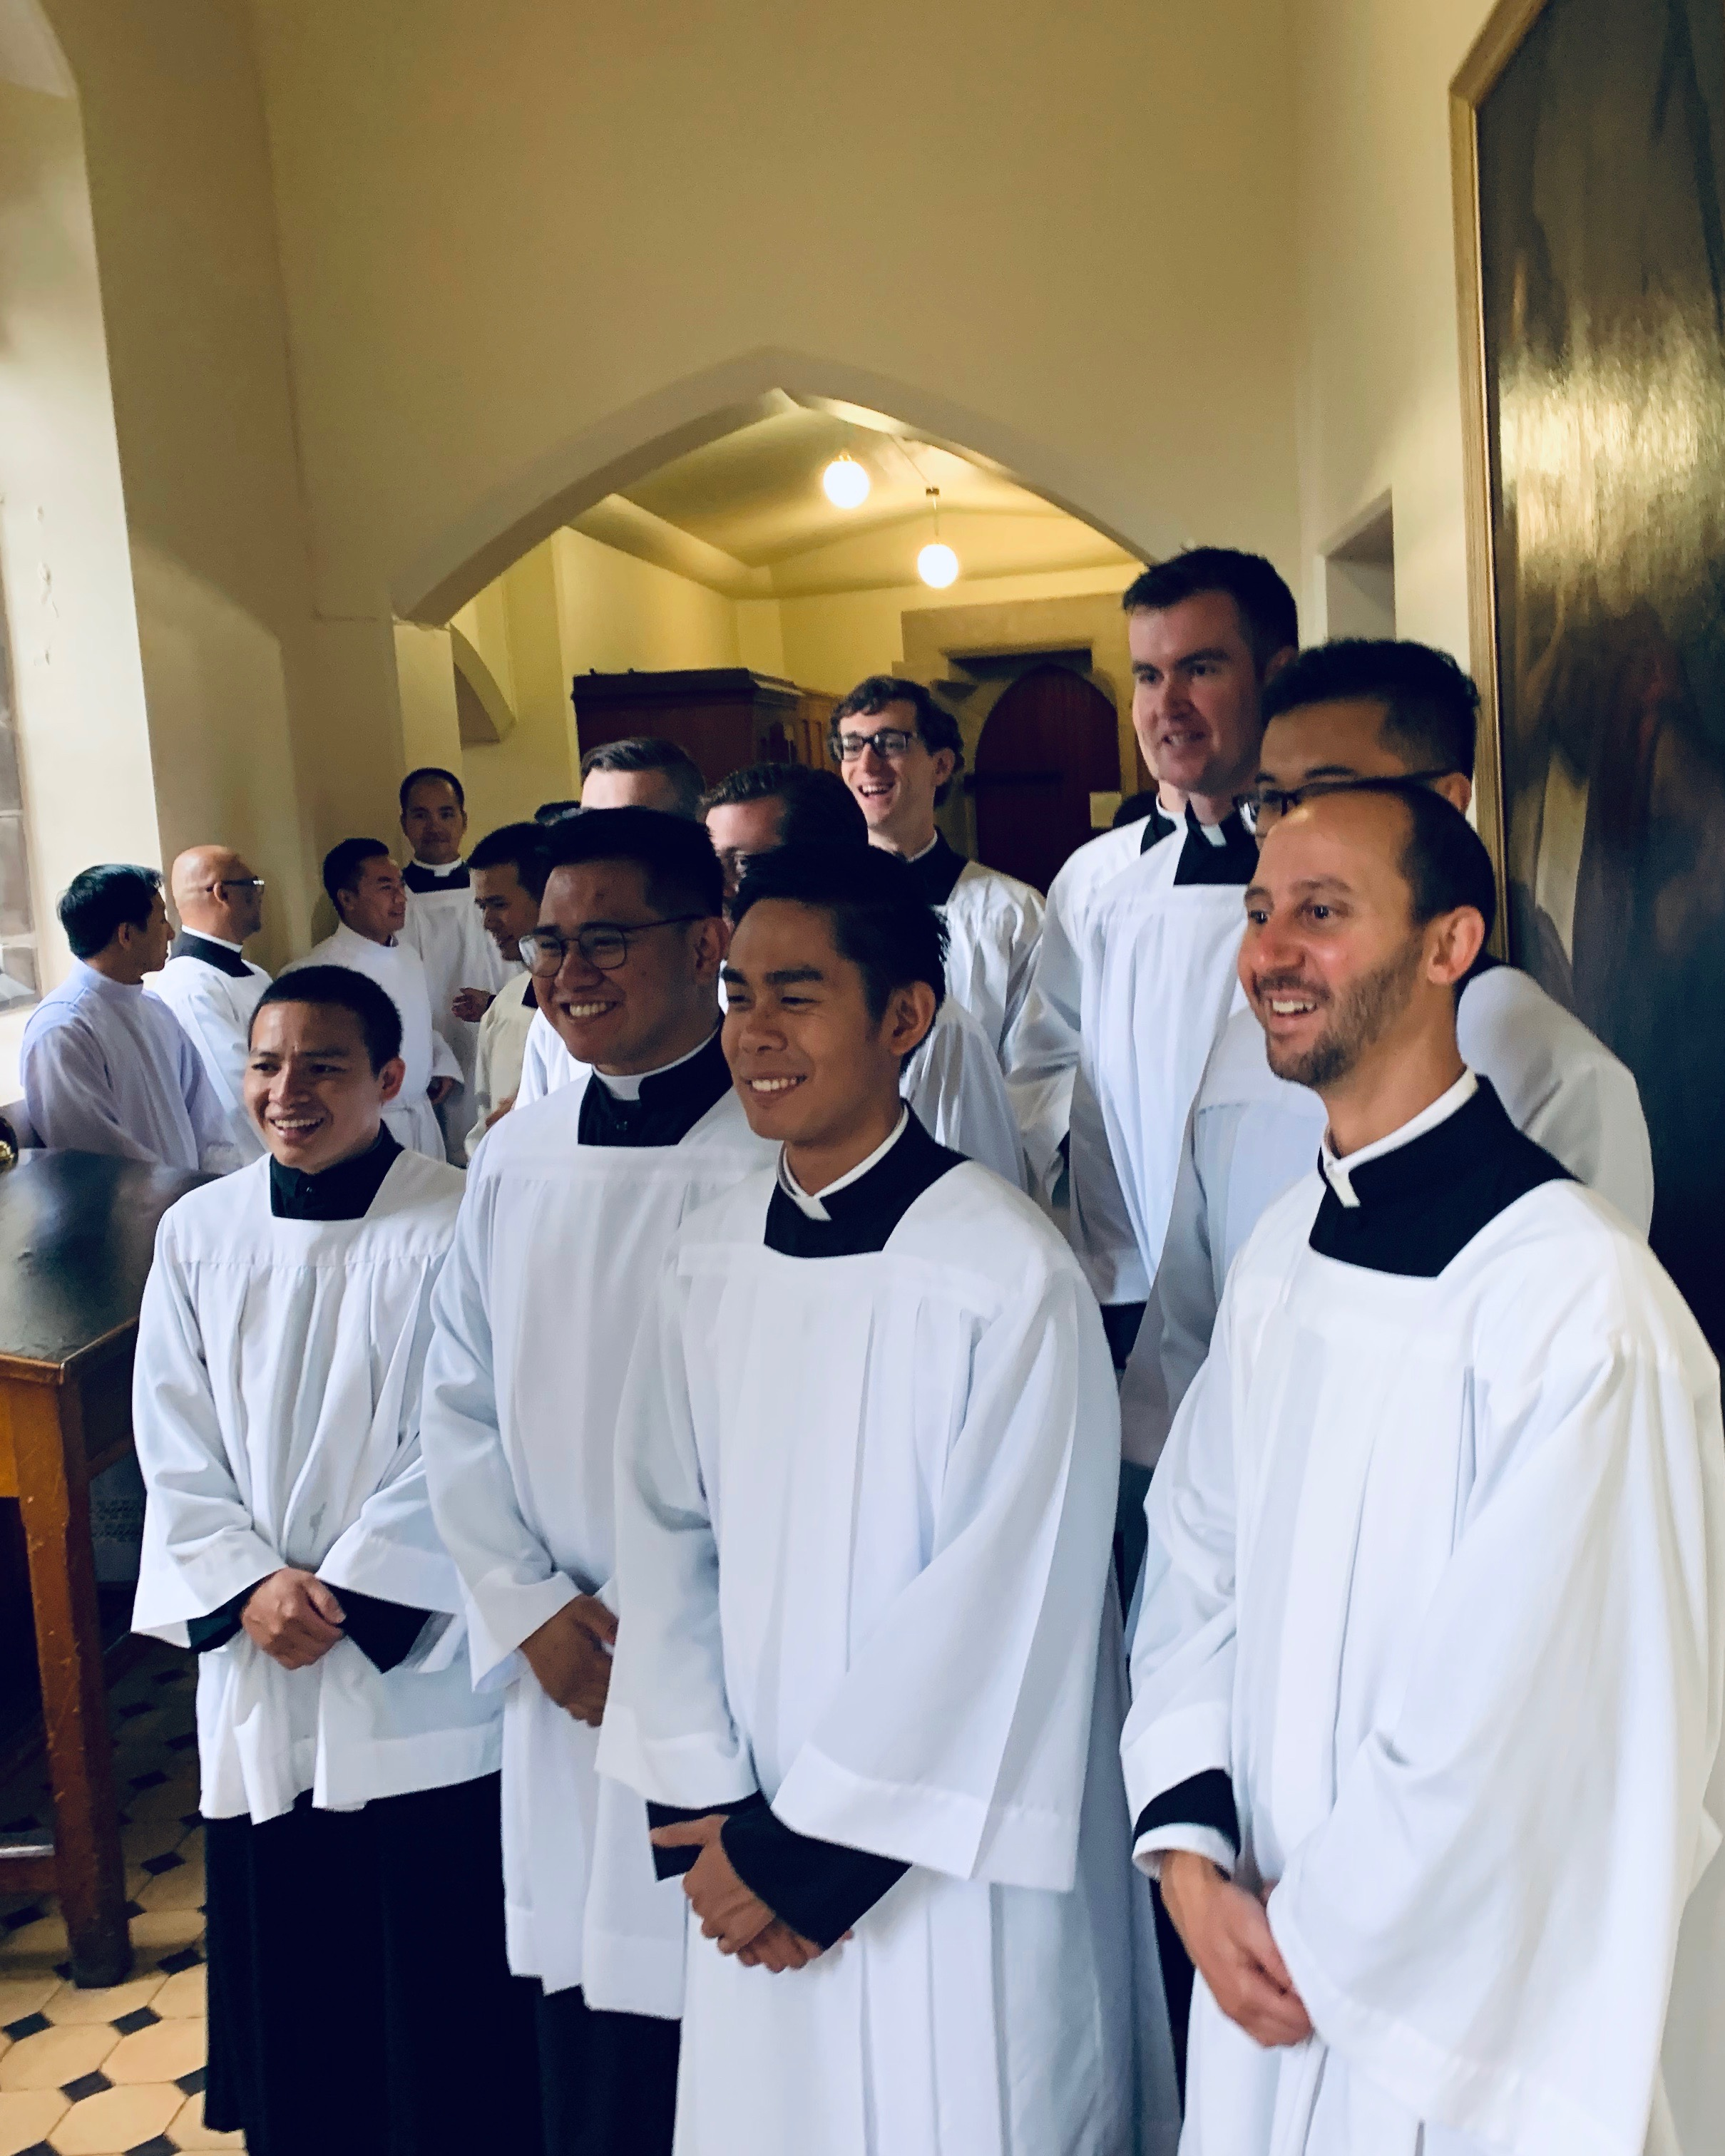 The First-years at St Patrick's Cathedral